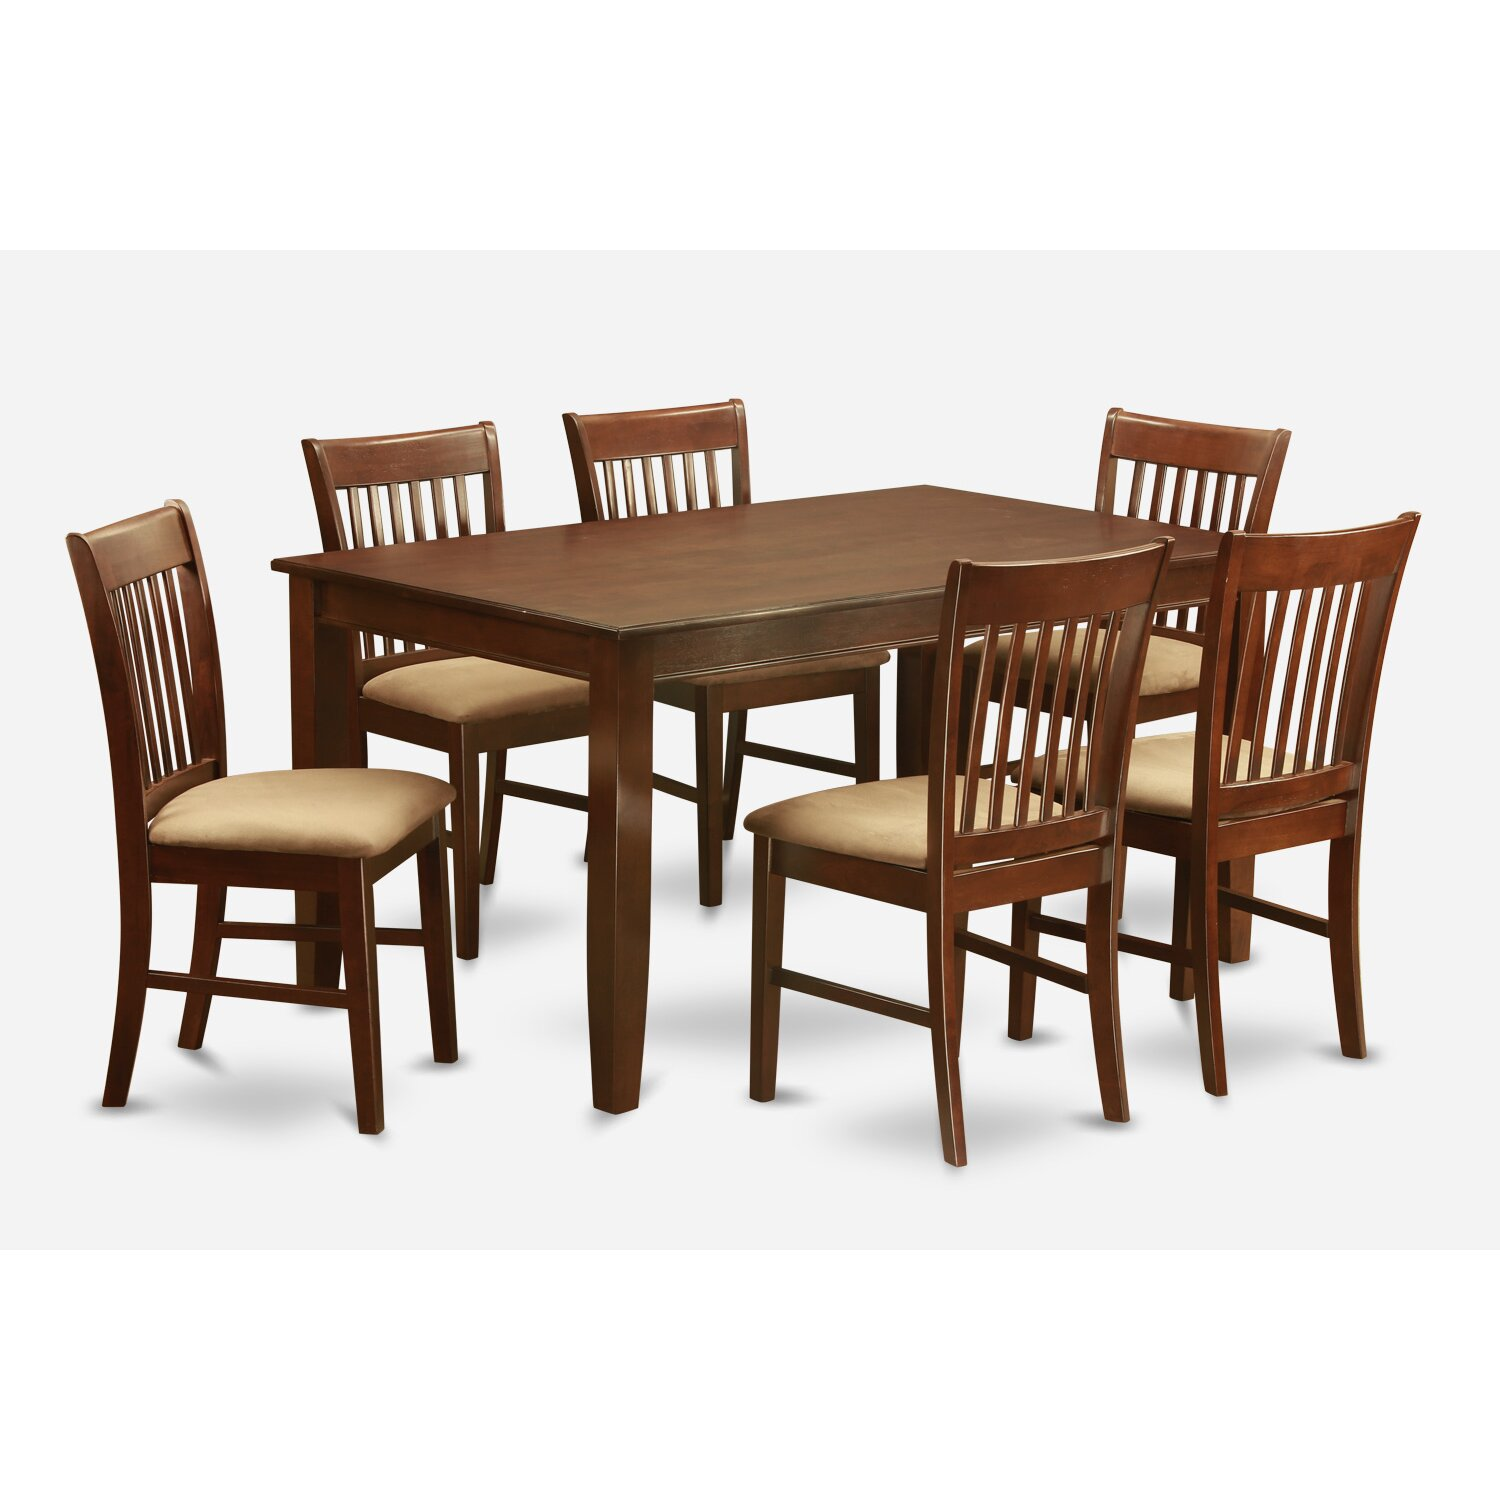 Wooden importers dudley 7 piece dining set reviews wayfair for 7 piece dining set